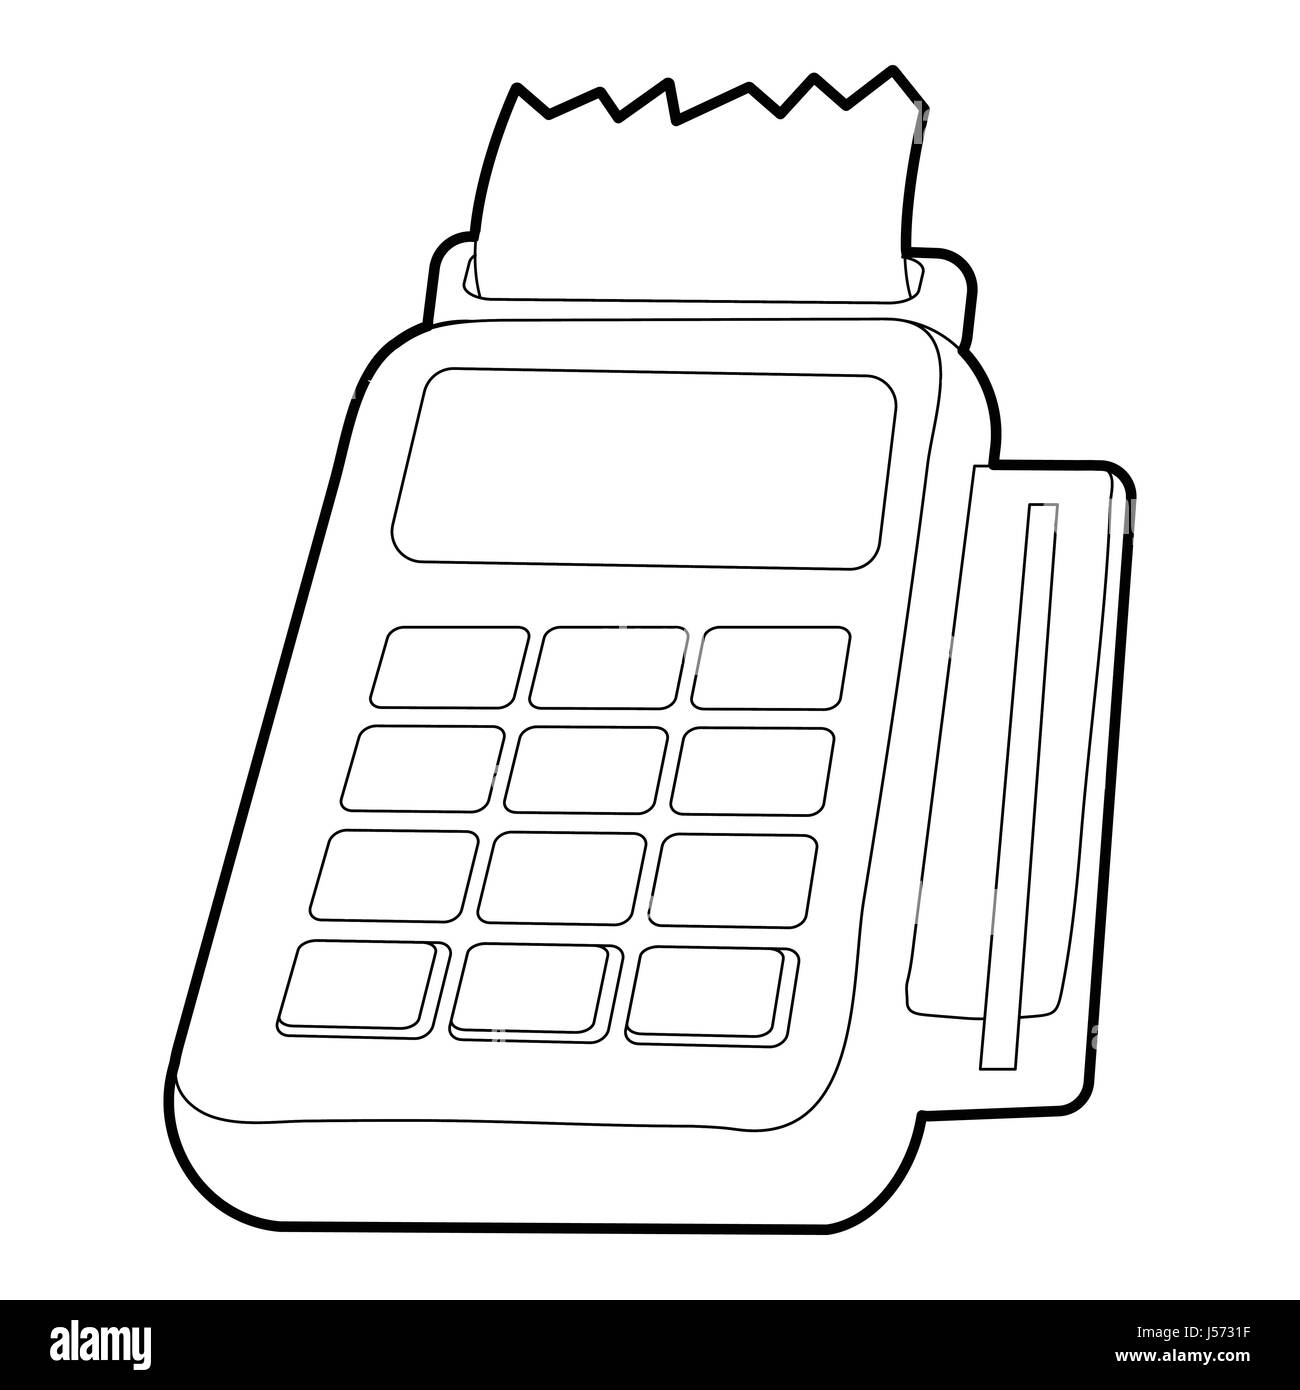 Card reader icon, outline style Stock Vector